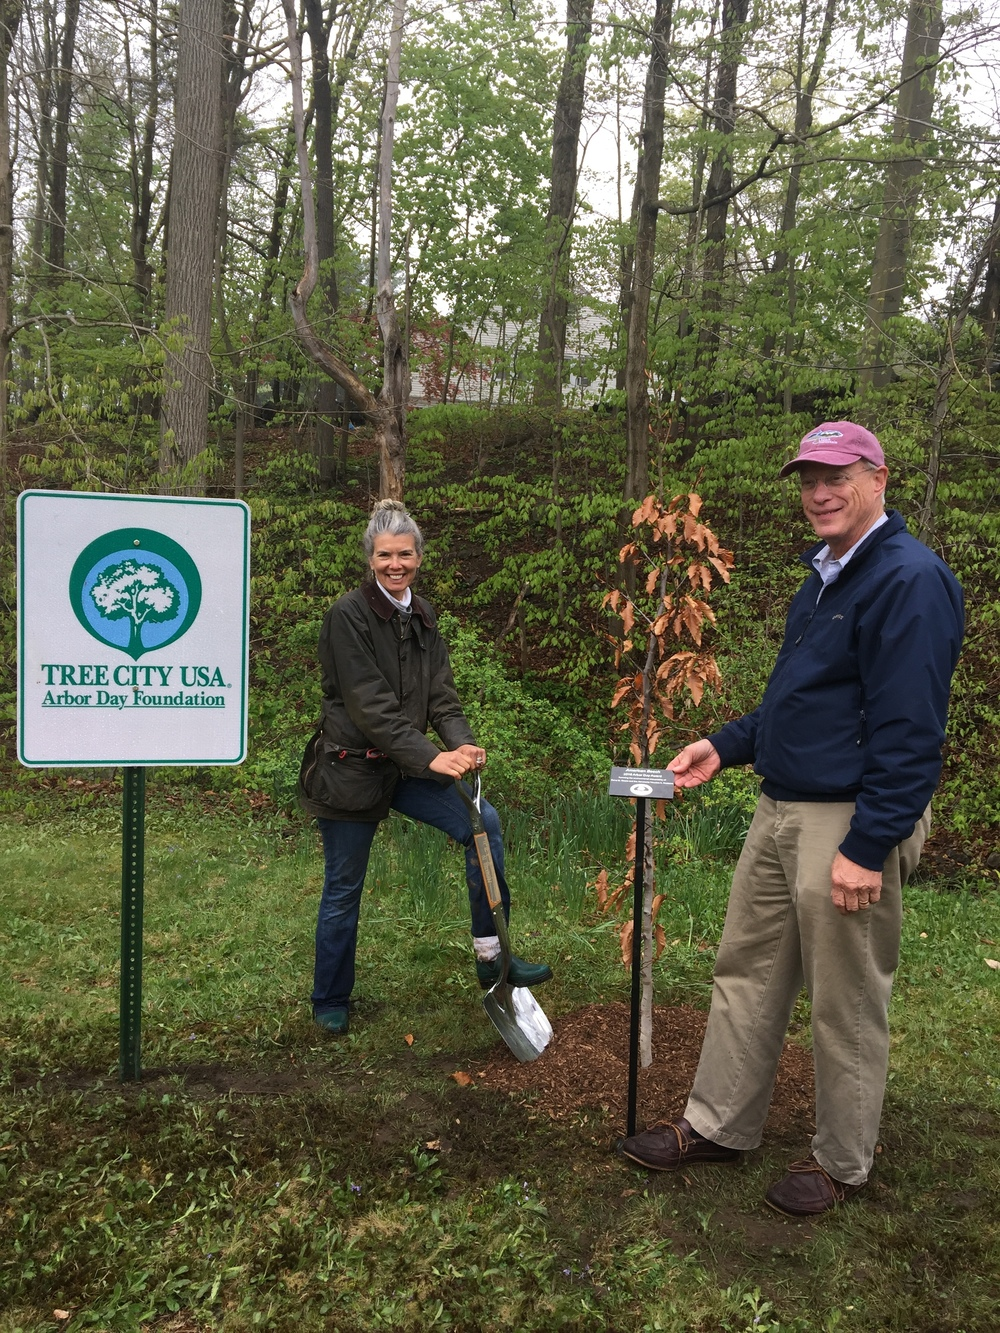 2016 Arbor Day Award winners Dena Steele and Houston Stebbins planting an American Beech tree at the entrance to Tuxedo Park.